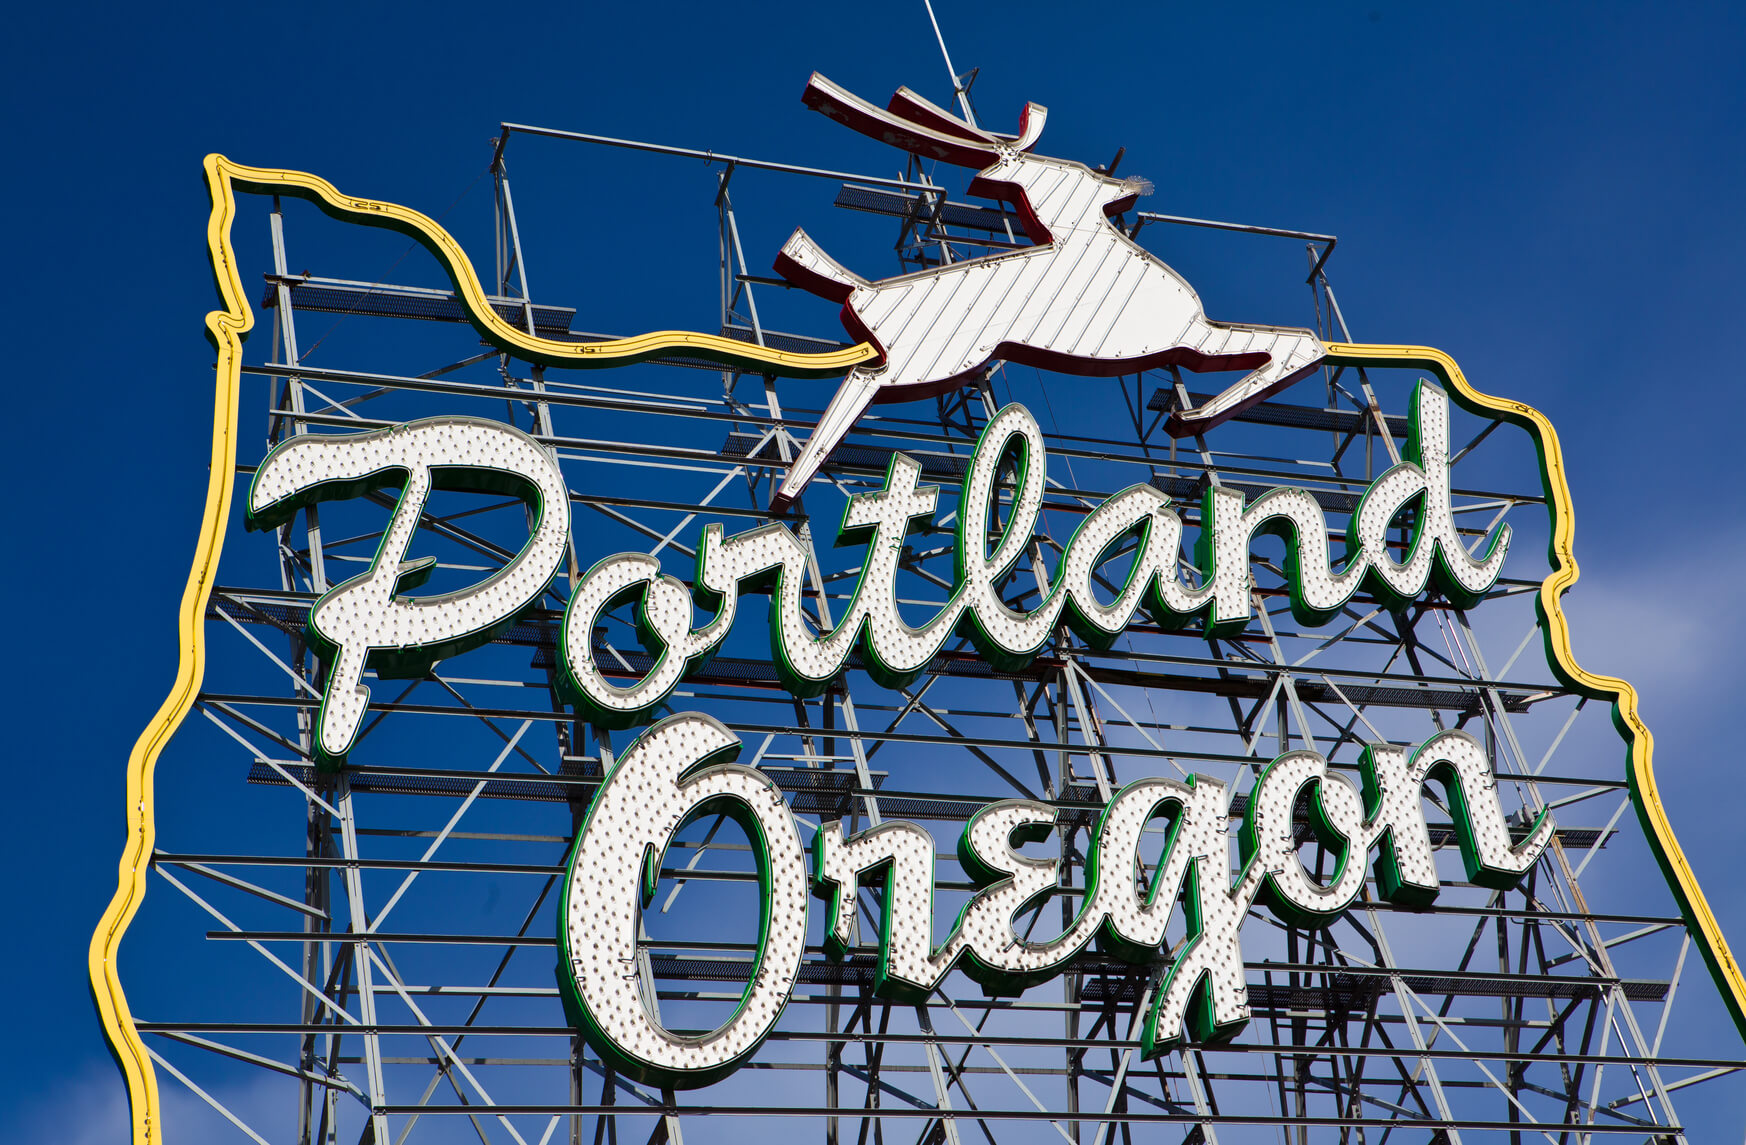 Seoul, South Korea to Portland, Oregon for only $514 USD roundtrip (Jun dates)